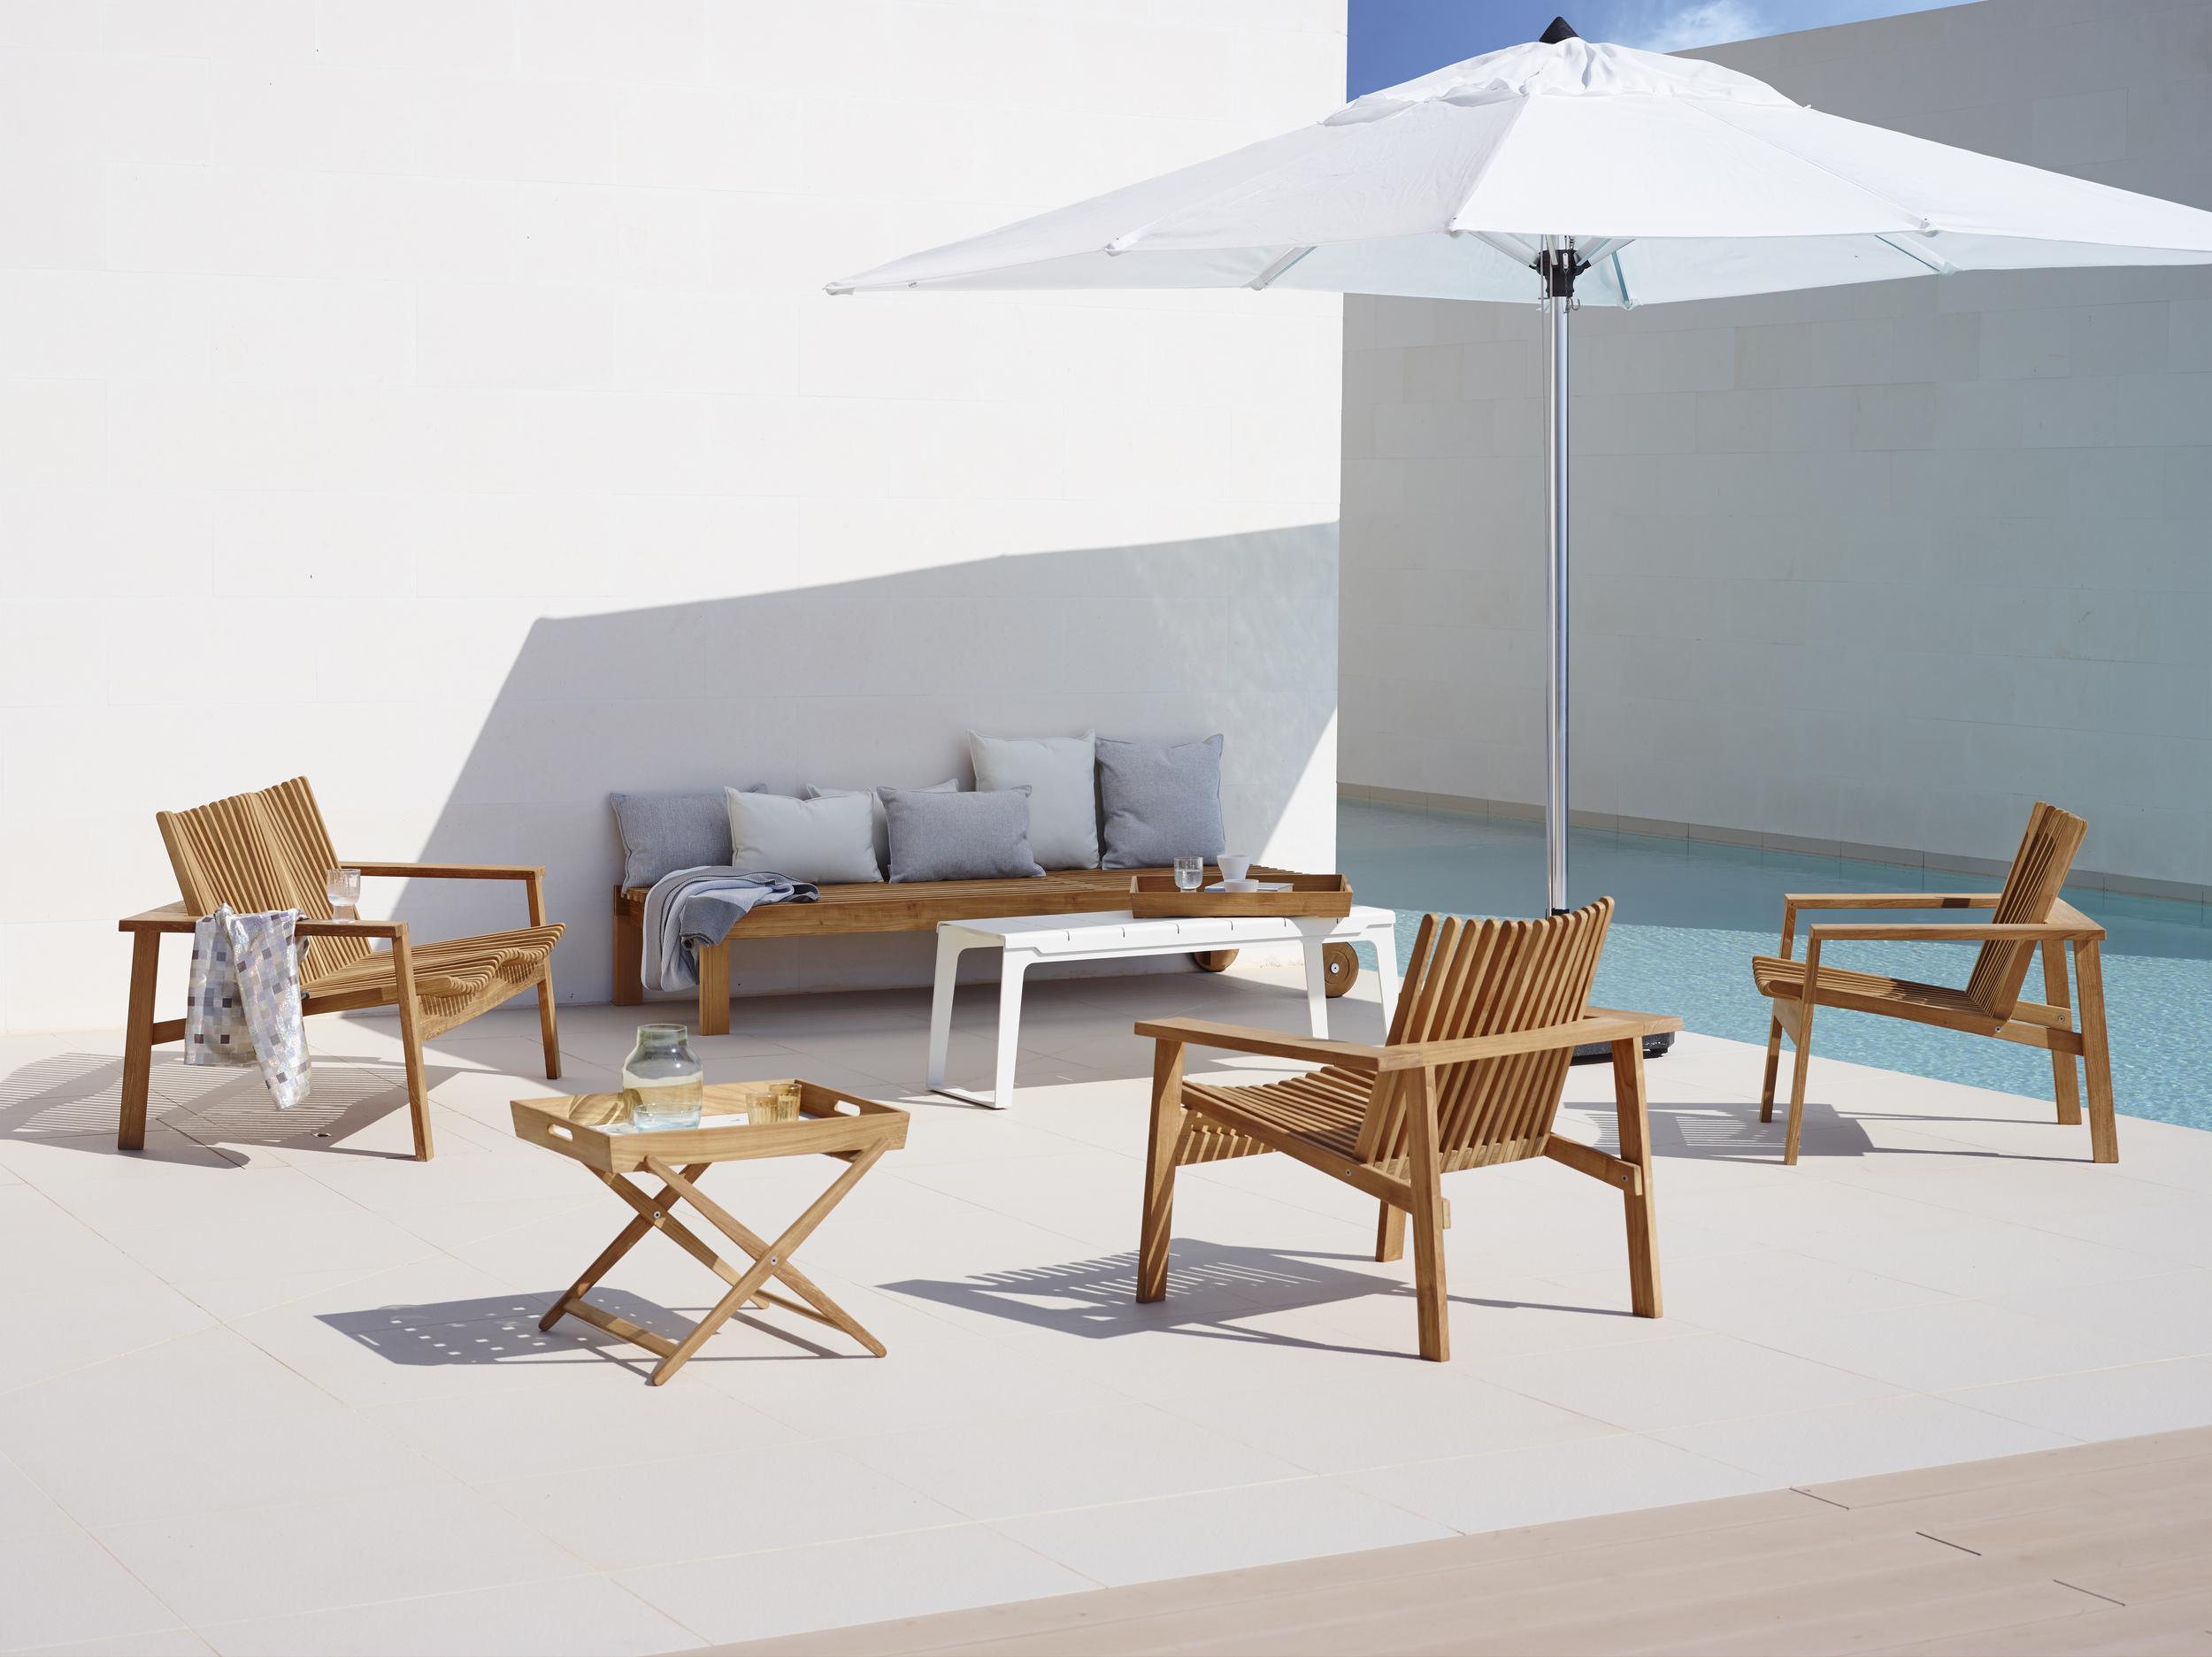 Cane-line Amaze Outdoor Furniture collection